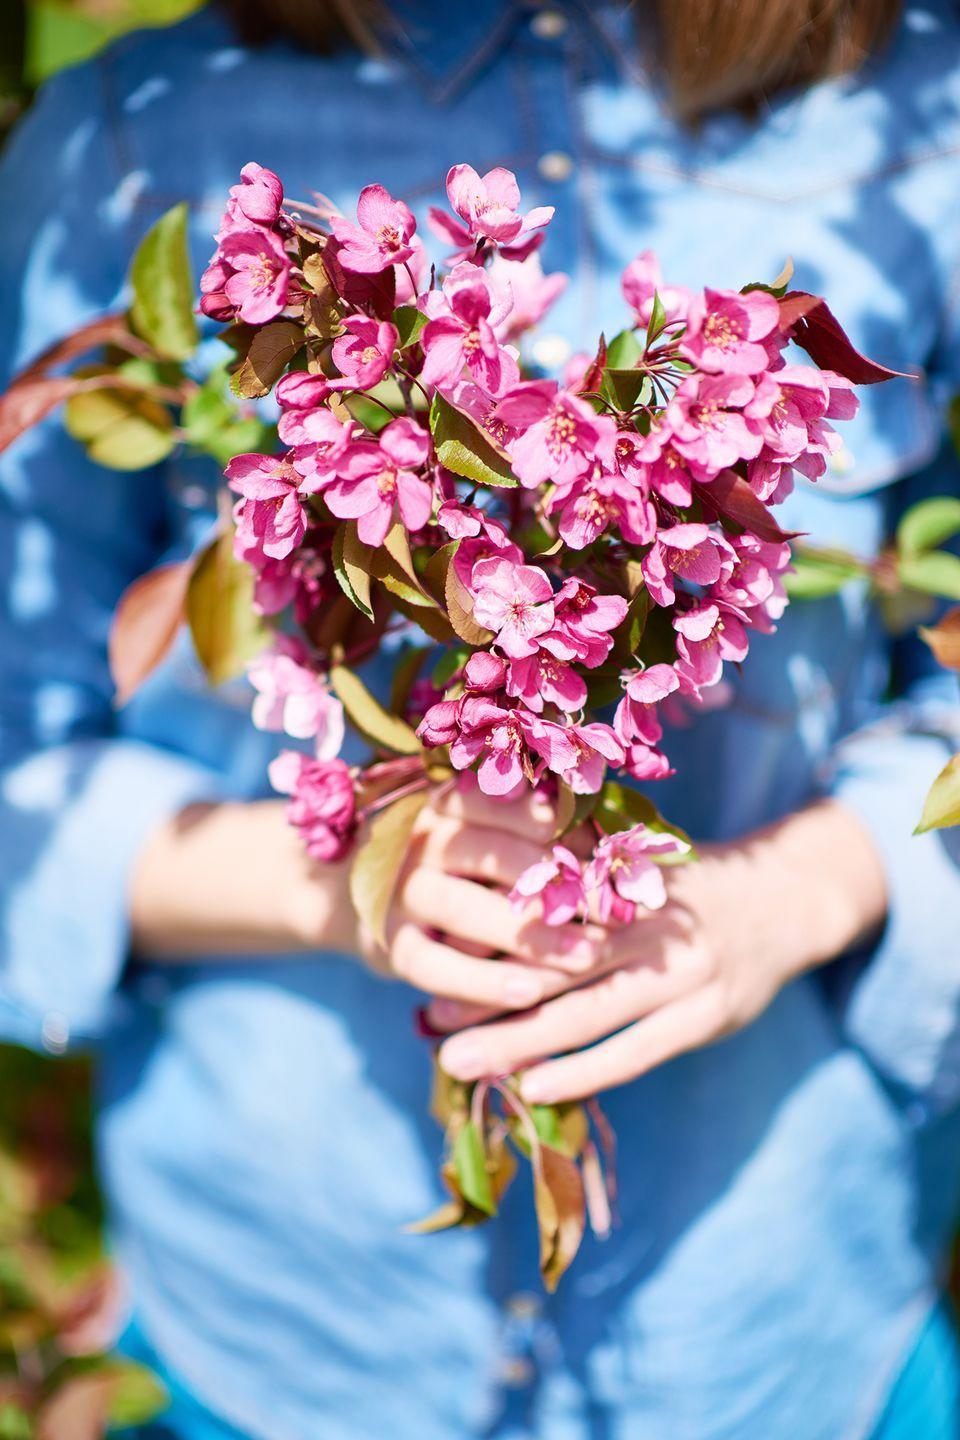 """<p>Make use of the pretty flowers you've grown in your yard all spring, or set out to a nearby flower farm to cut some fresh blooms. Once you're home, arrange them in a <a href=""""https://www.countryliving.com/diy-crafts/g4461/mason-jar-flower-arrangements/"""" rel=""""nofollow noopener"""" target=""""_blank"""" data-ylk=""""slk:pretty Mason jar"""" class=""""link rapid-noclick-resp"""">pretty Mason jar</a> or a <a href=""""https://www.countryliving.com/entertaining/g207/floral-displays-0606/"""" rel=""""nofollow noopener"""" target=""""_blank"""" data-ylk=""""slk:DIY flower arrangement"""" class=""""link rapid-noclick-resp"""">DIY flower arrangement</a>.</p>"""